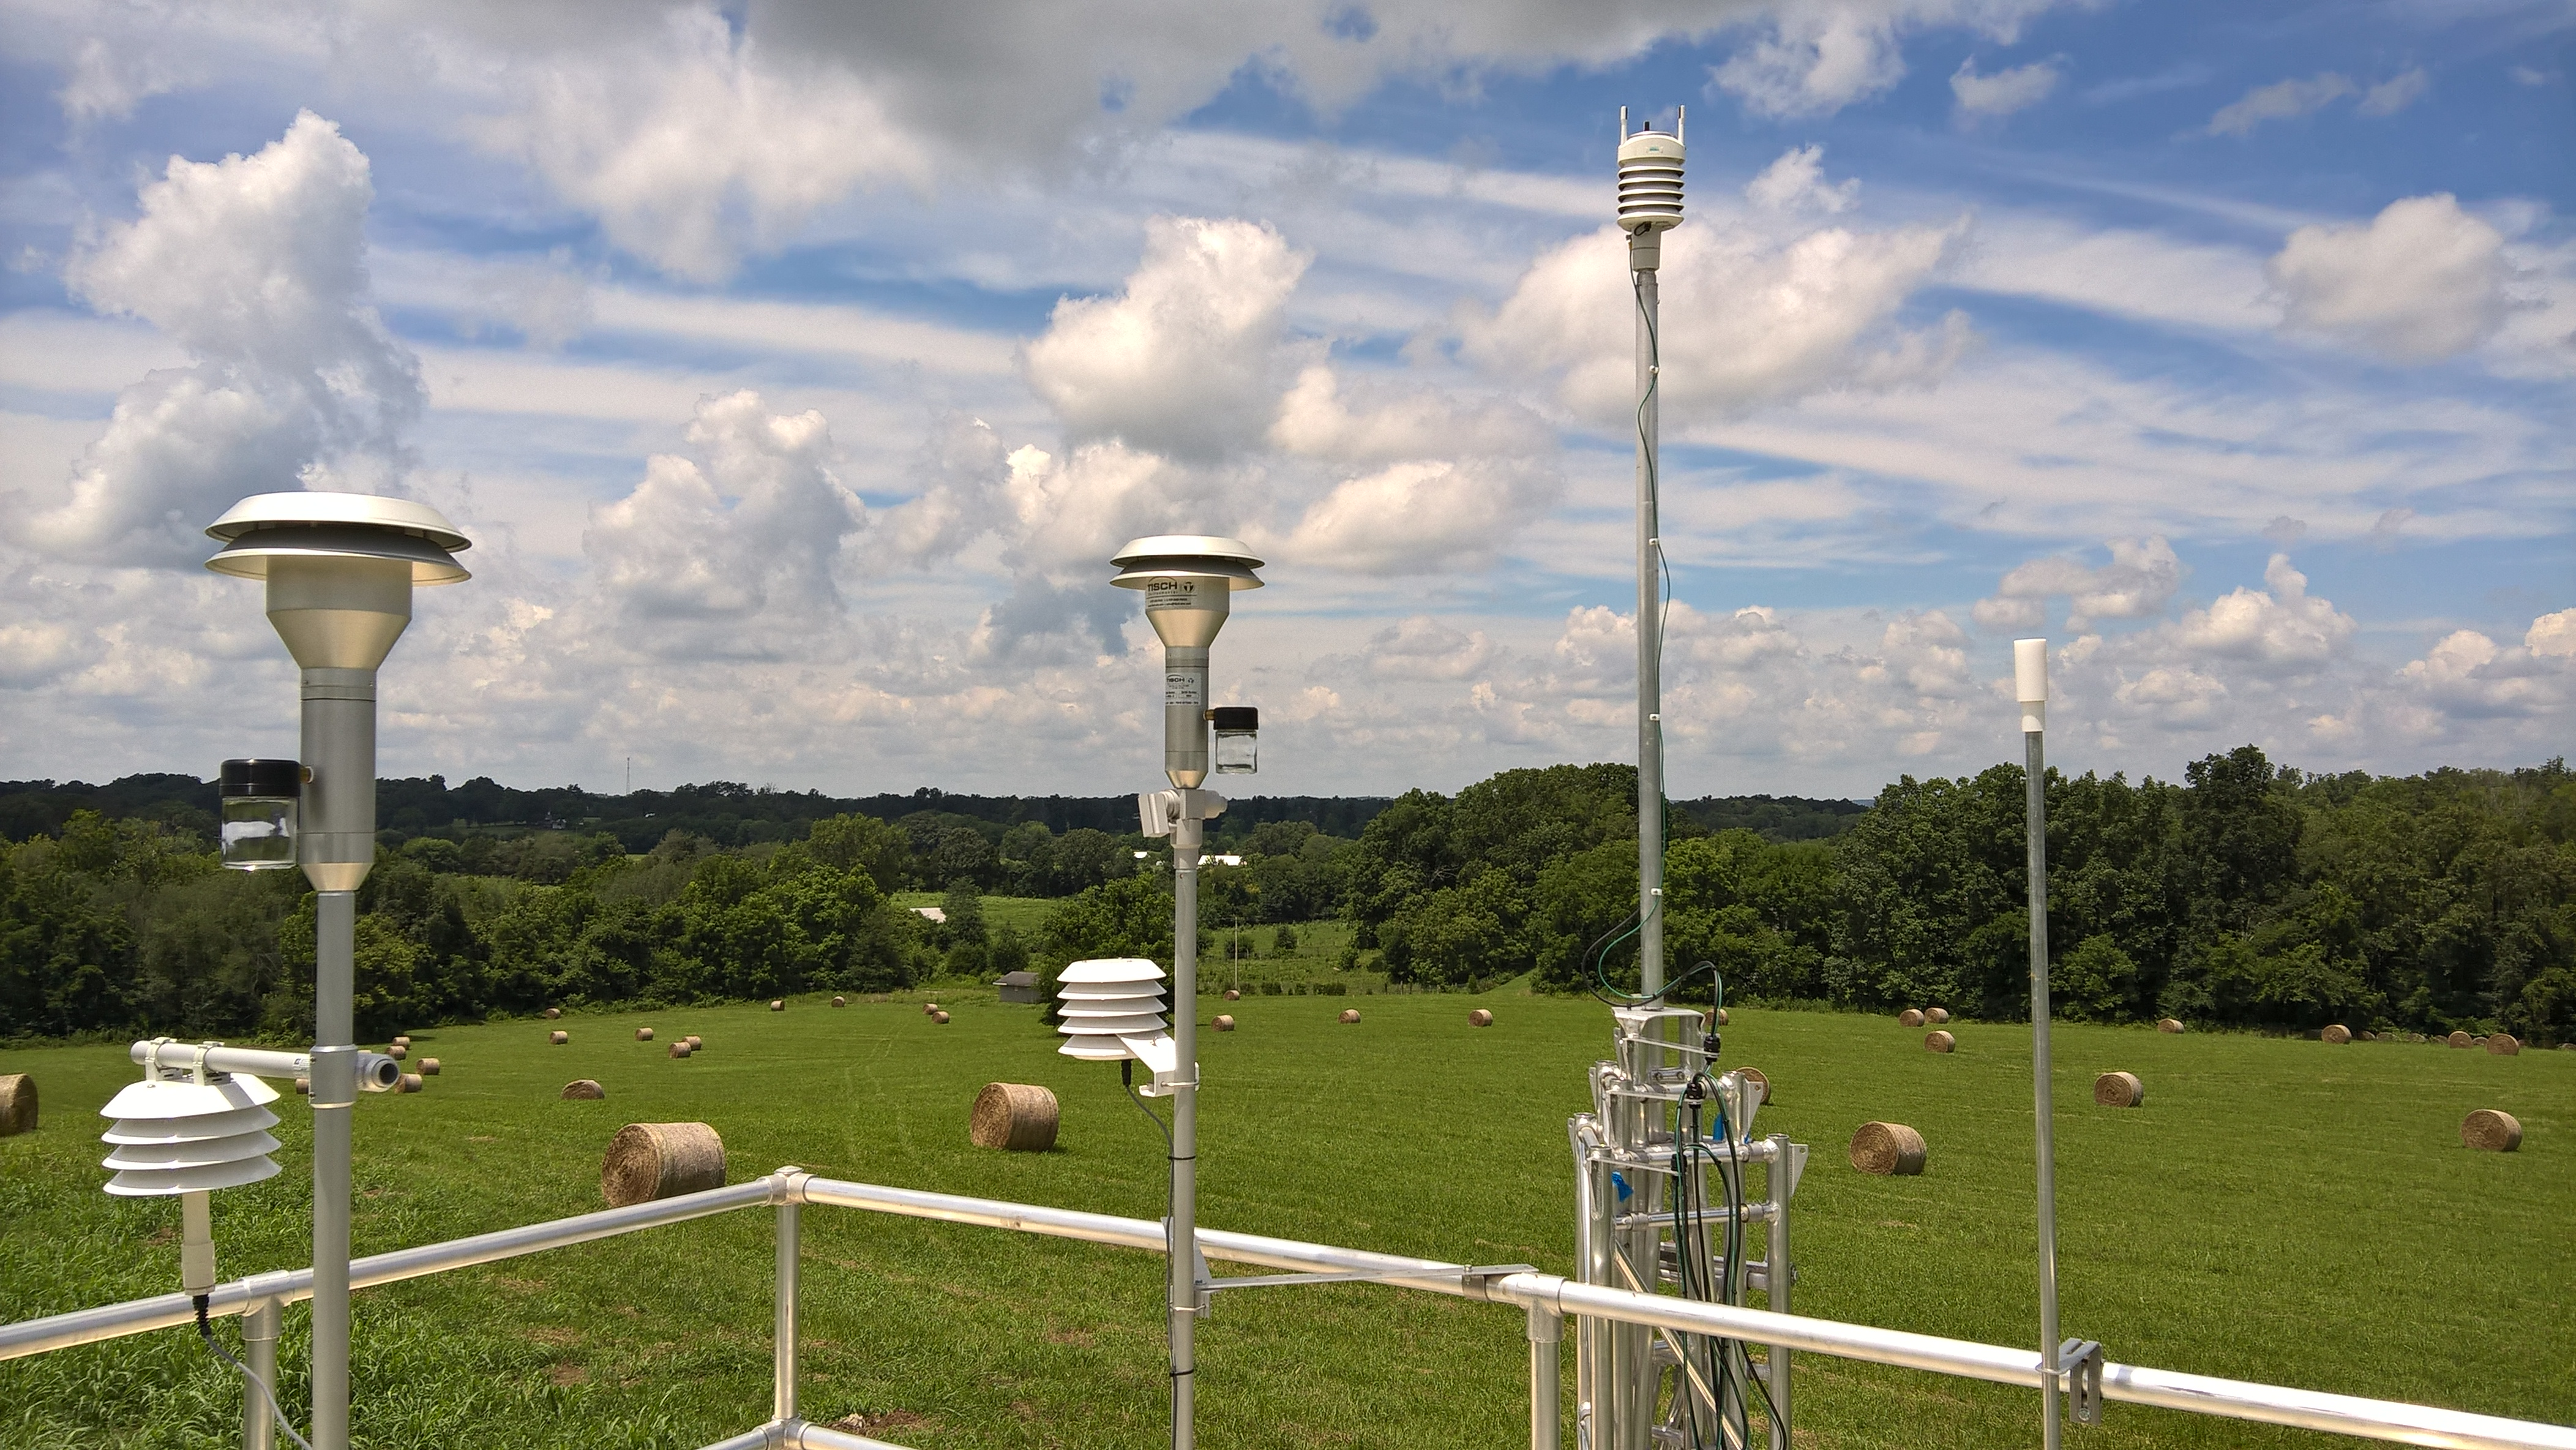 Air Sampling System : Ambient air quality monitoring system installed cas